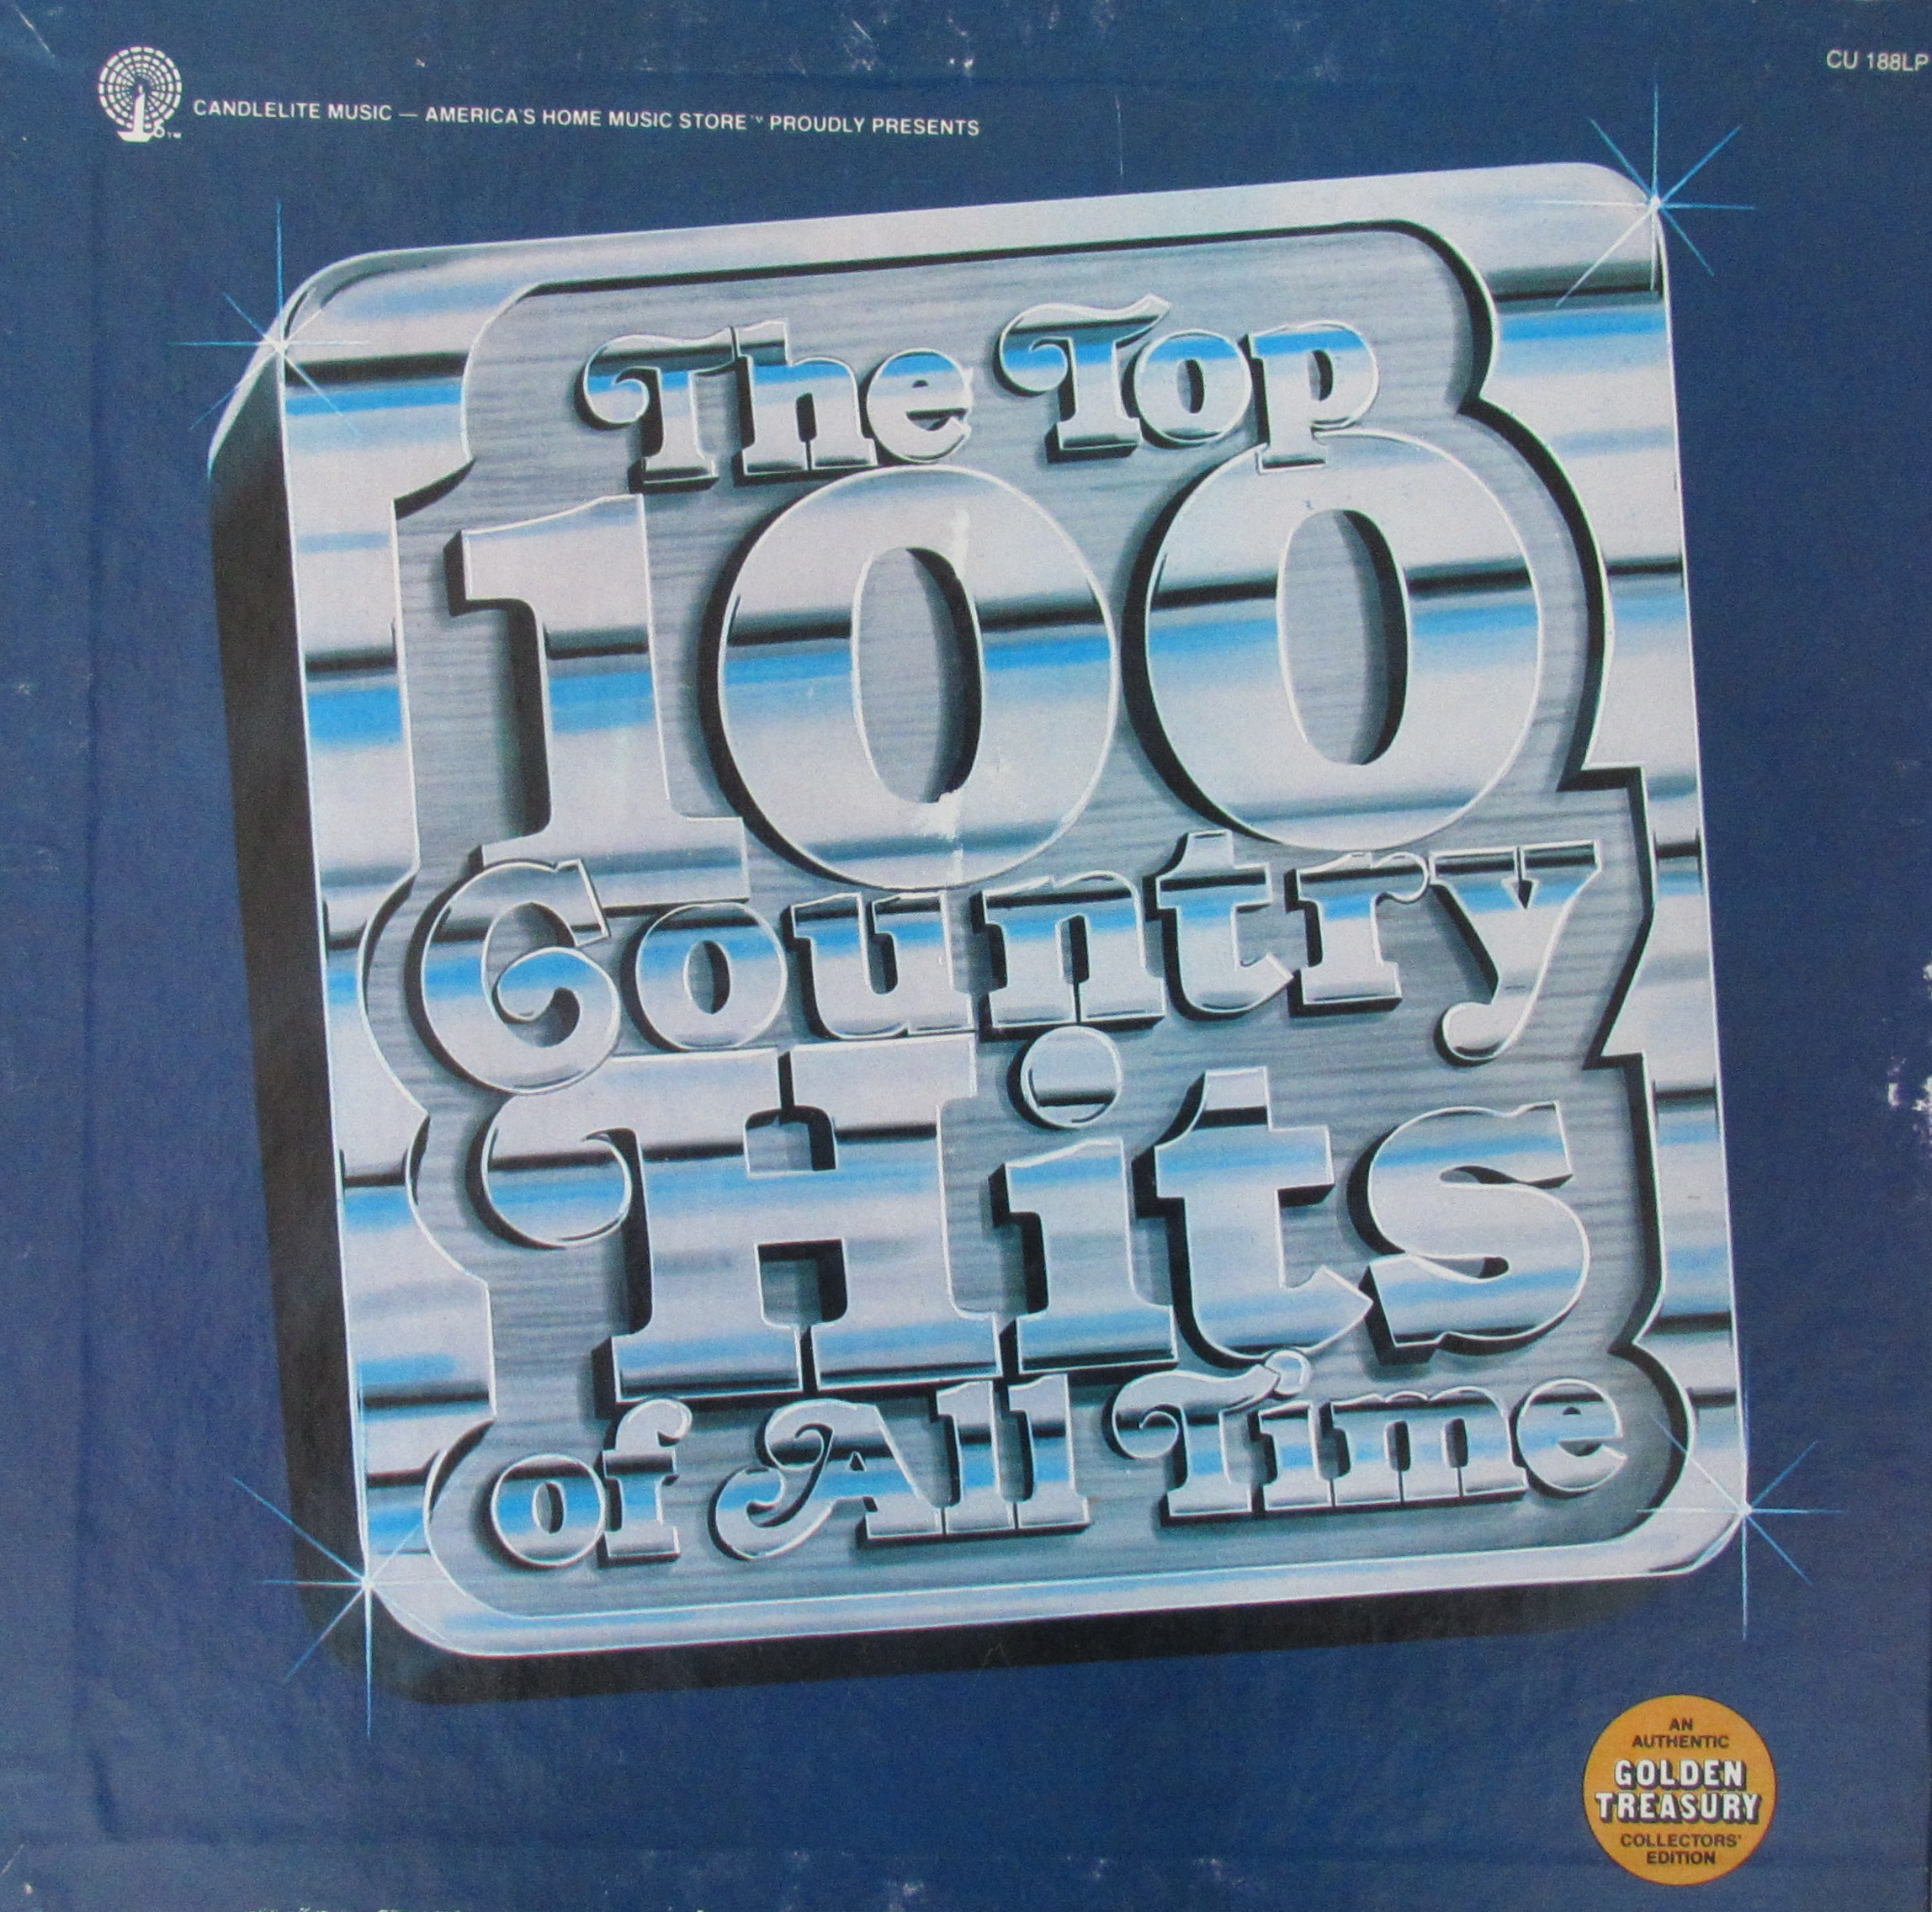 What are the all time top 100 country hits?